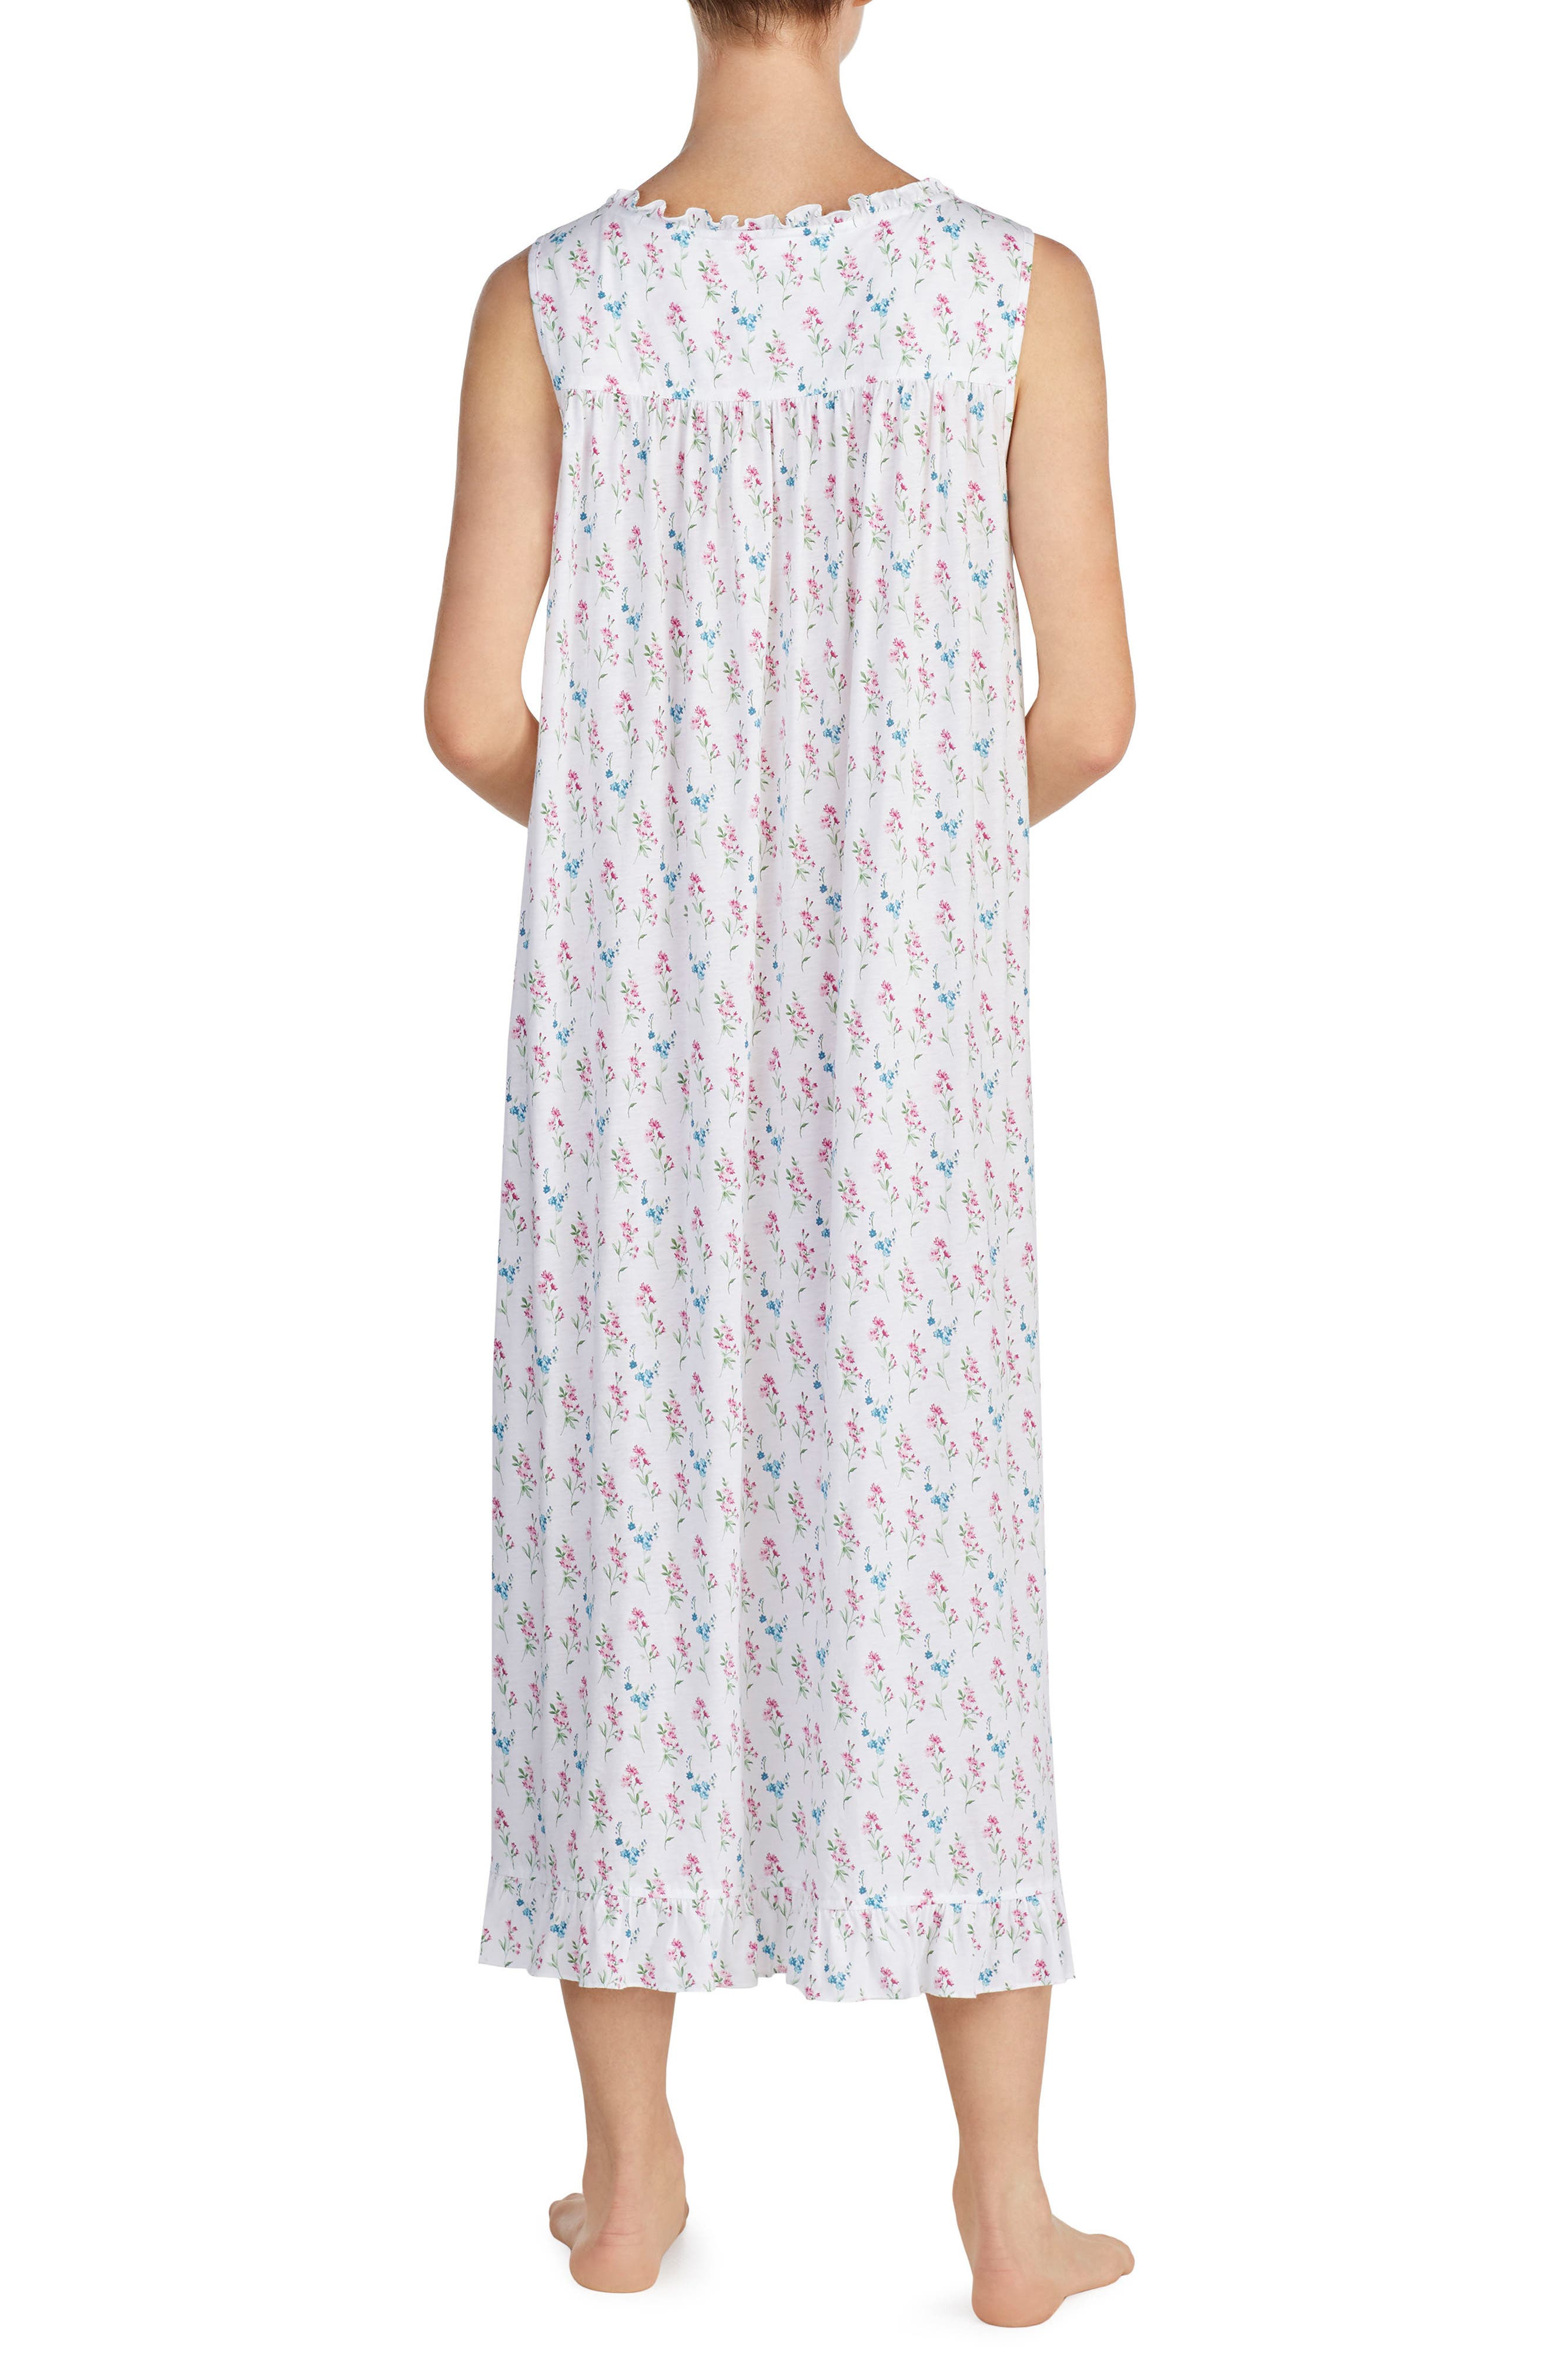 Long Nightgown,                             Alternate thumbnail 2, color,                             White Grnd Multi Fall Floral